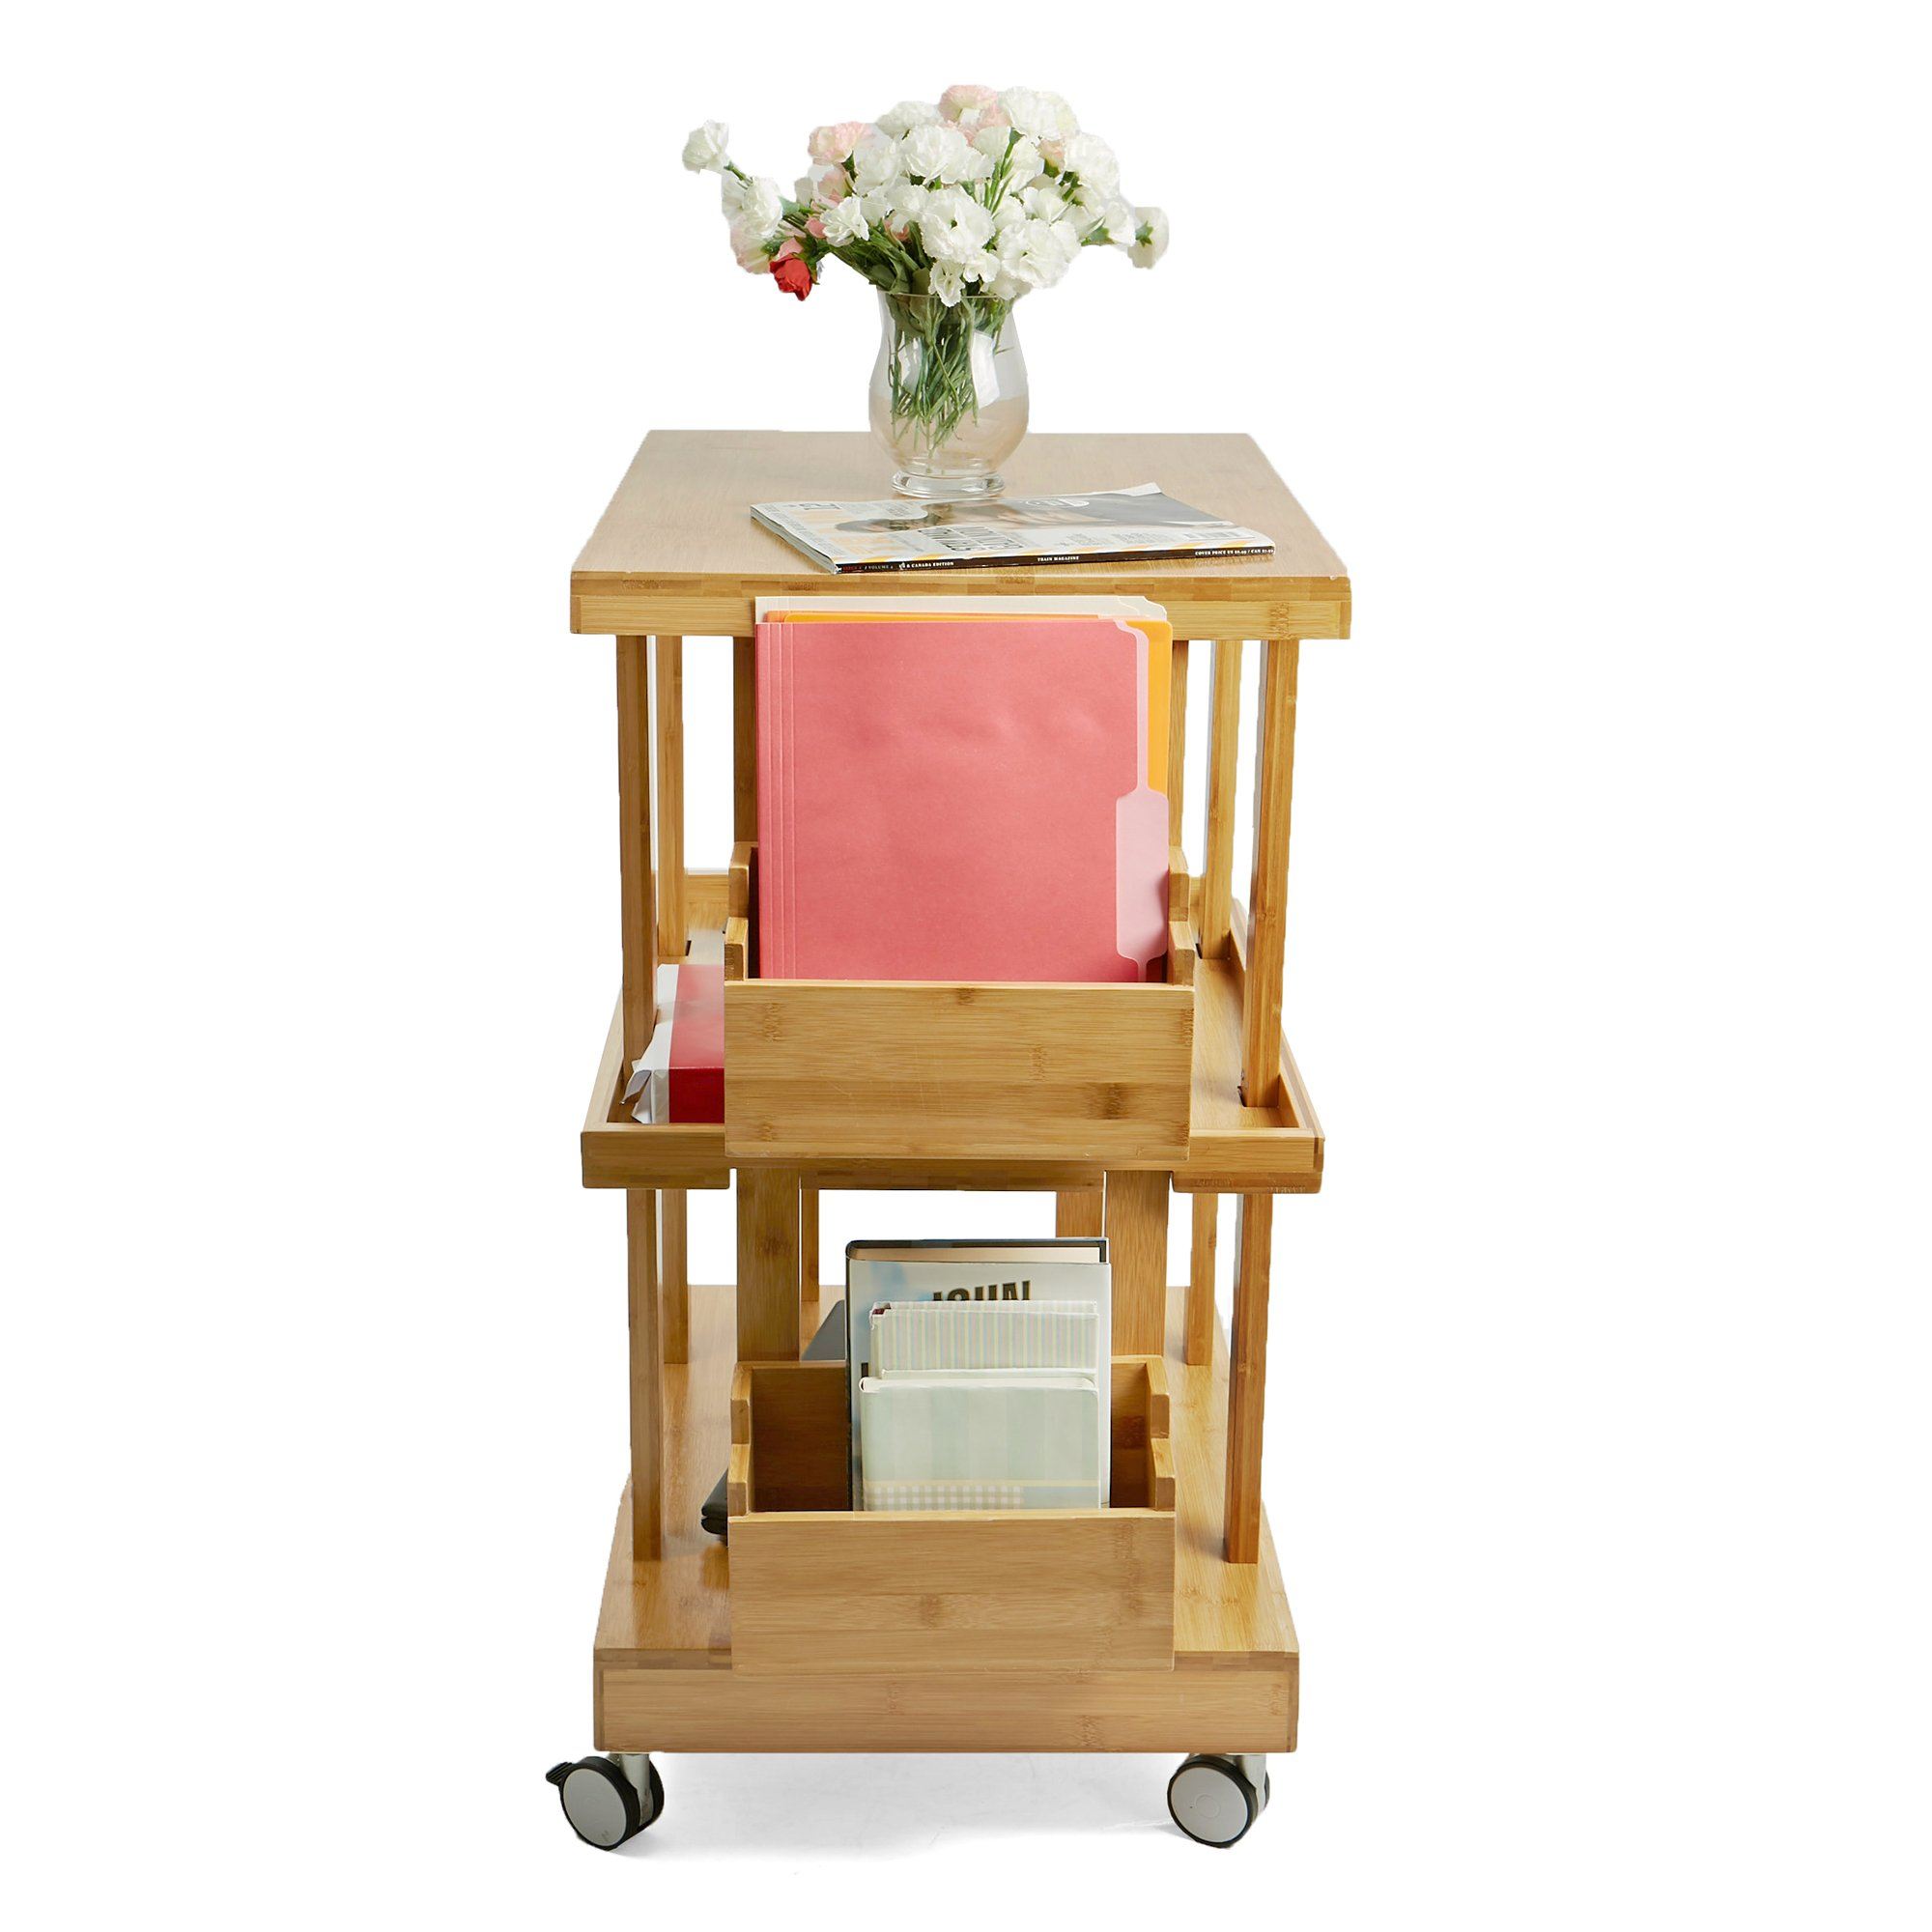 Mind Reader 3-Tier Kitchen Utility Cart with 2 Storage Compartments, Bamboo Wood, Brown by Mind Reader (Image #6)